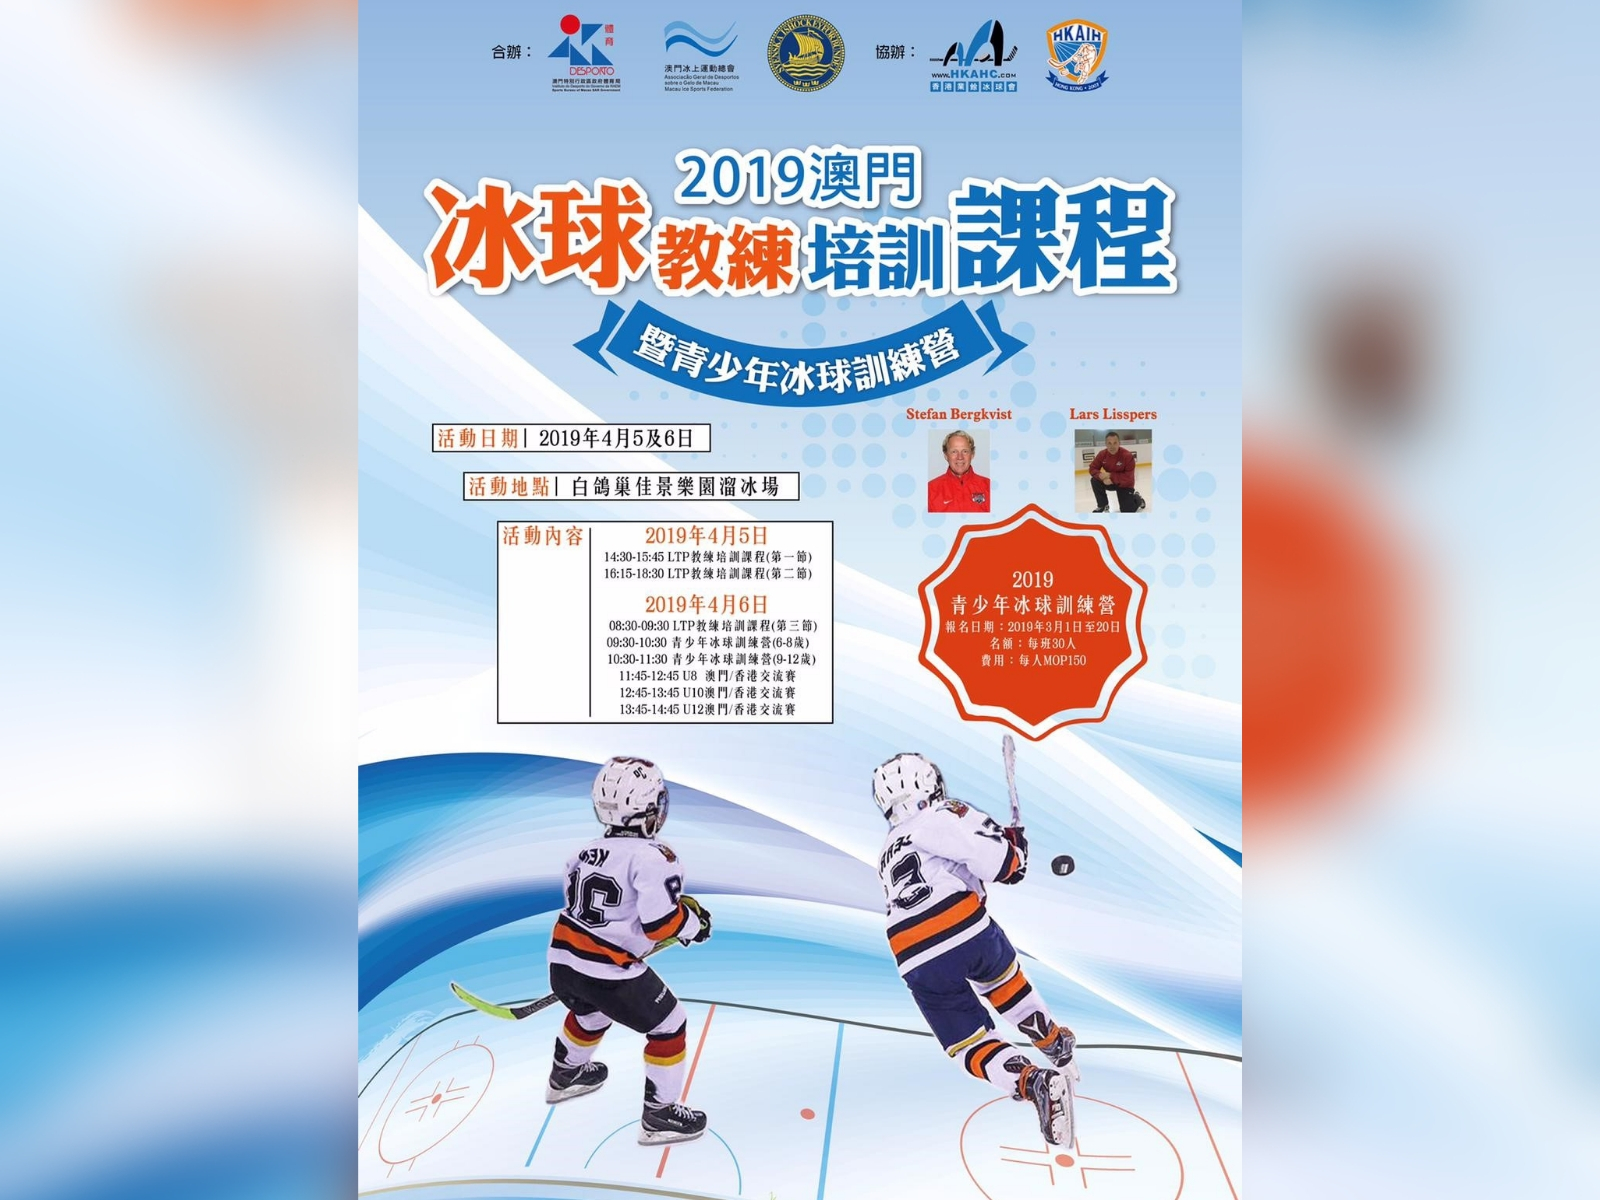 Macau Ice Hockey 2